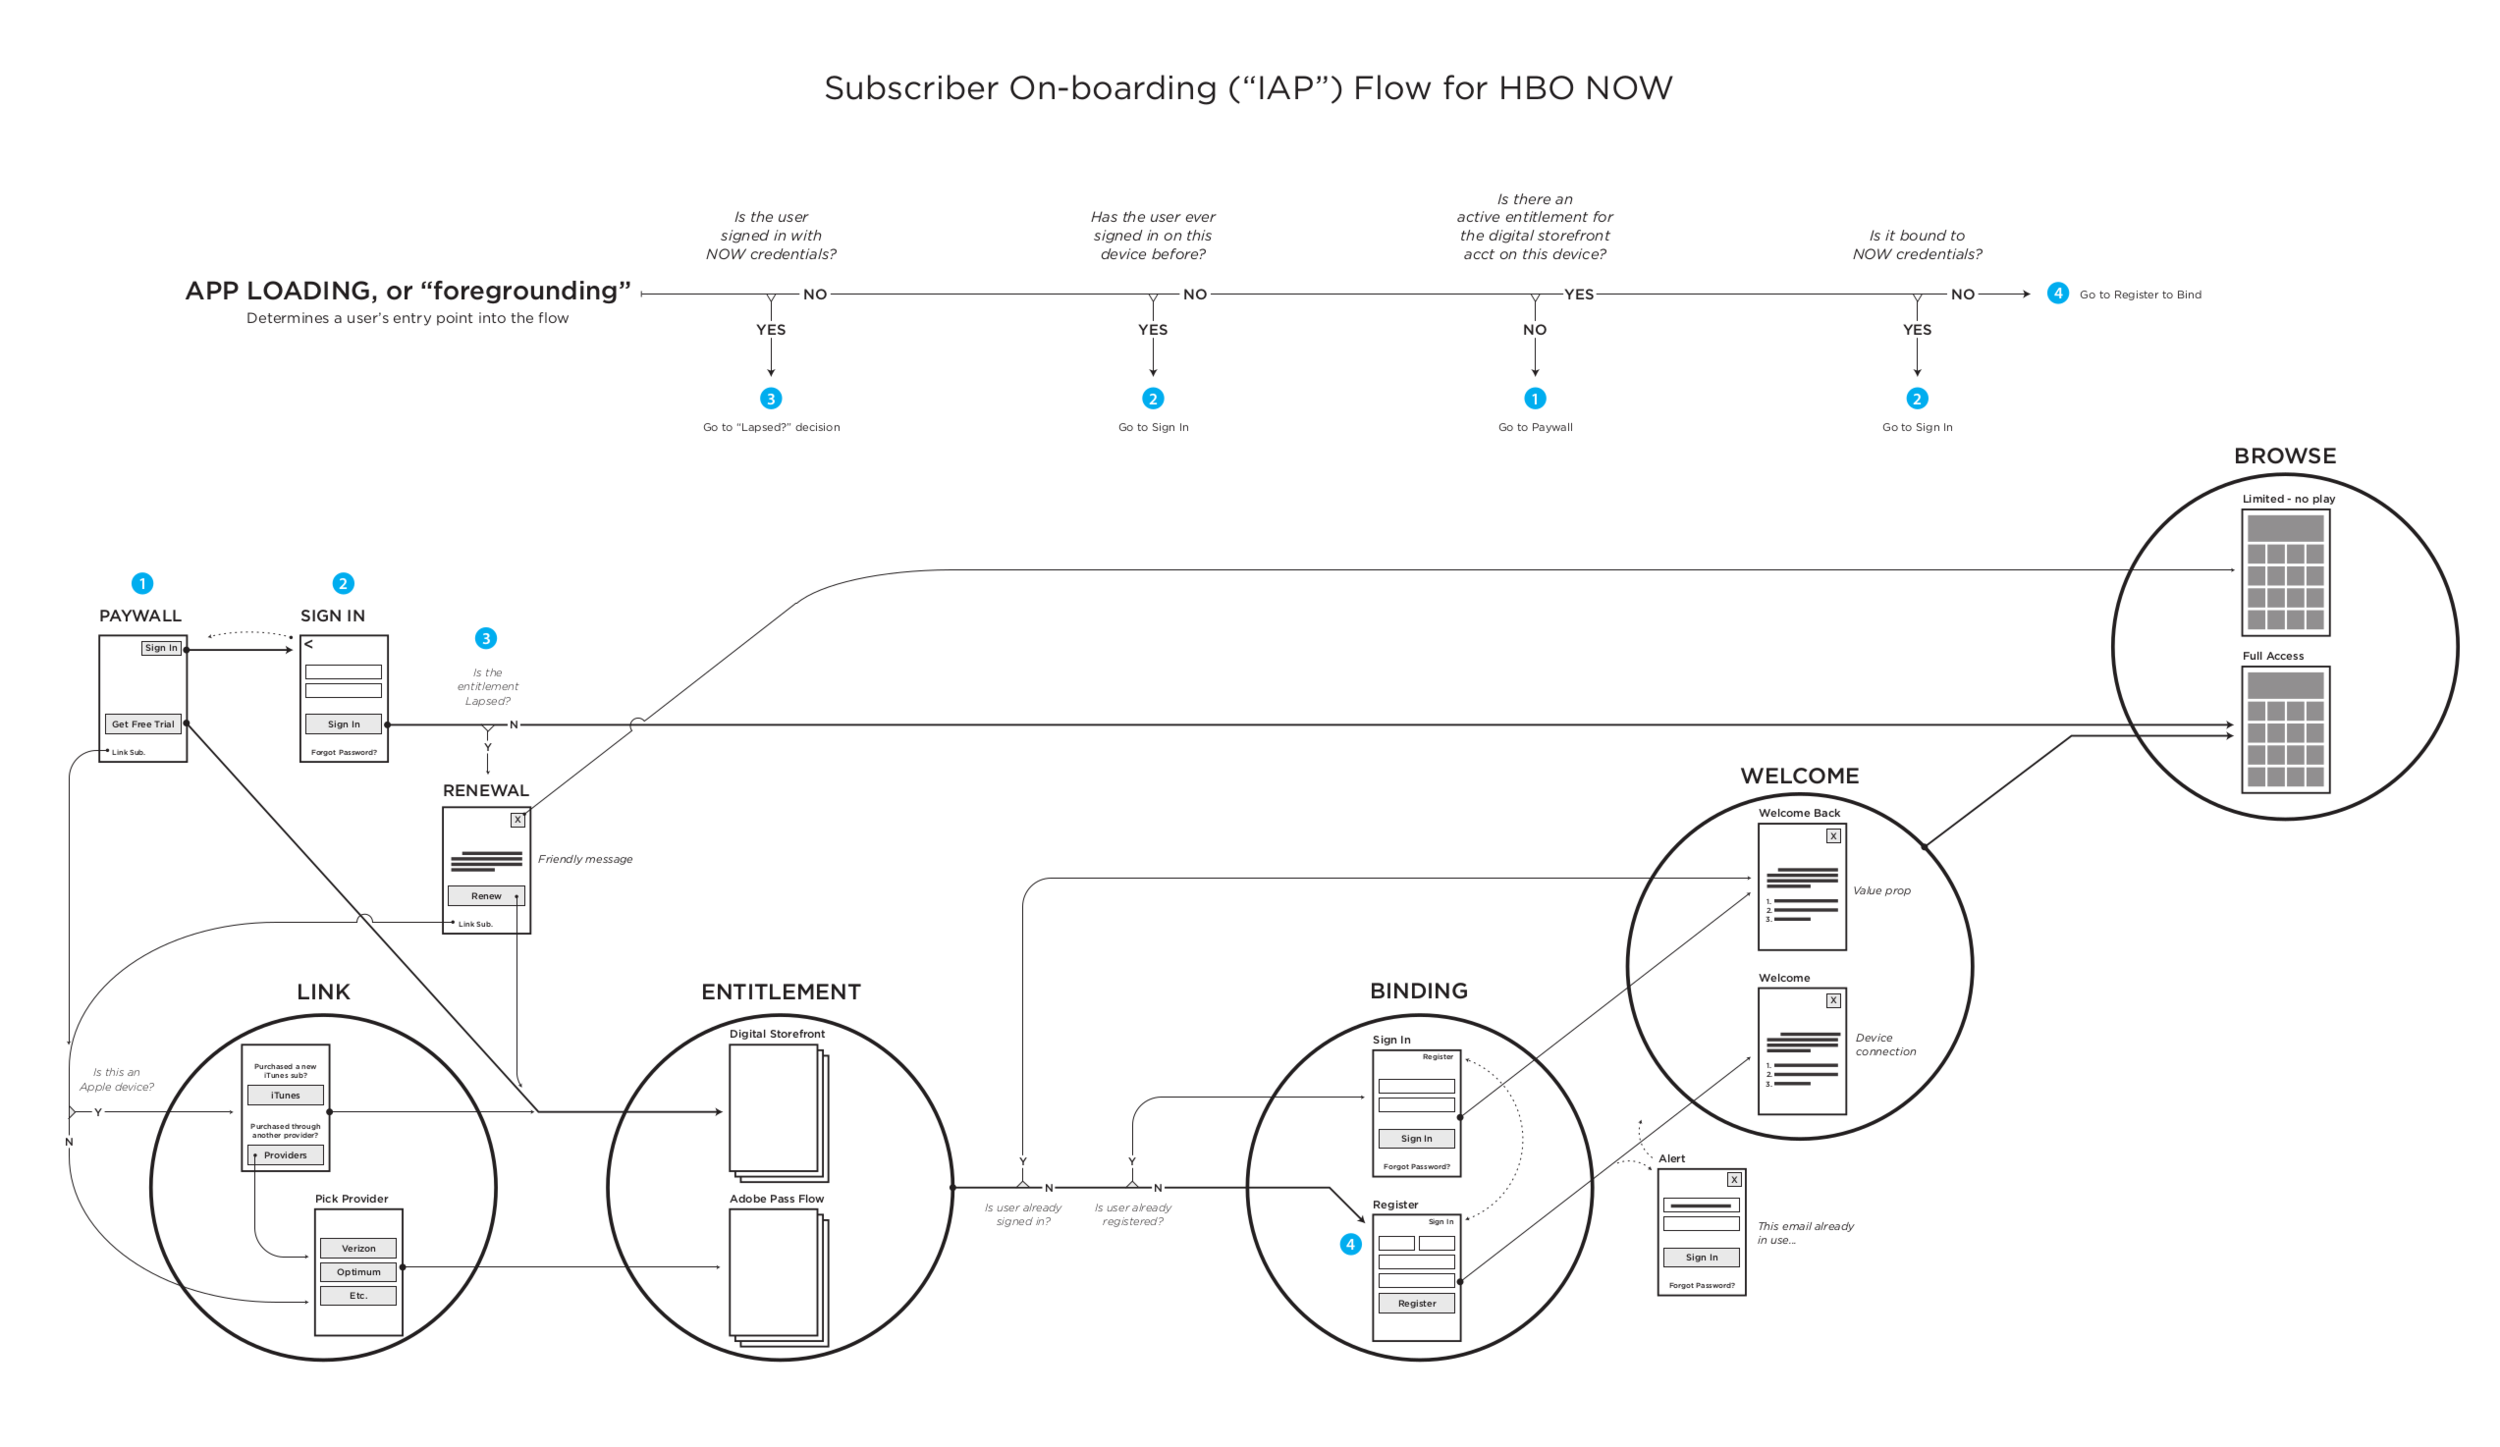 "Going ""over-the-top"" with HBO NOW introduced complex subscriber status variants HBO hadn't previously been concerned with. This diagram addresses the various flows a user experiences based on the status of their entitlement, registration, and the binding of the two."